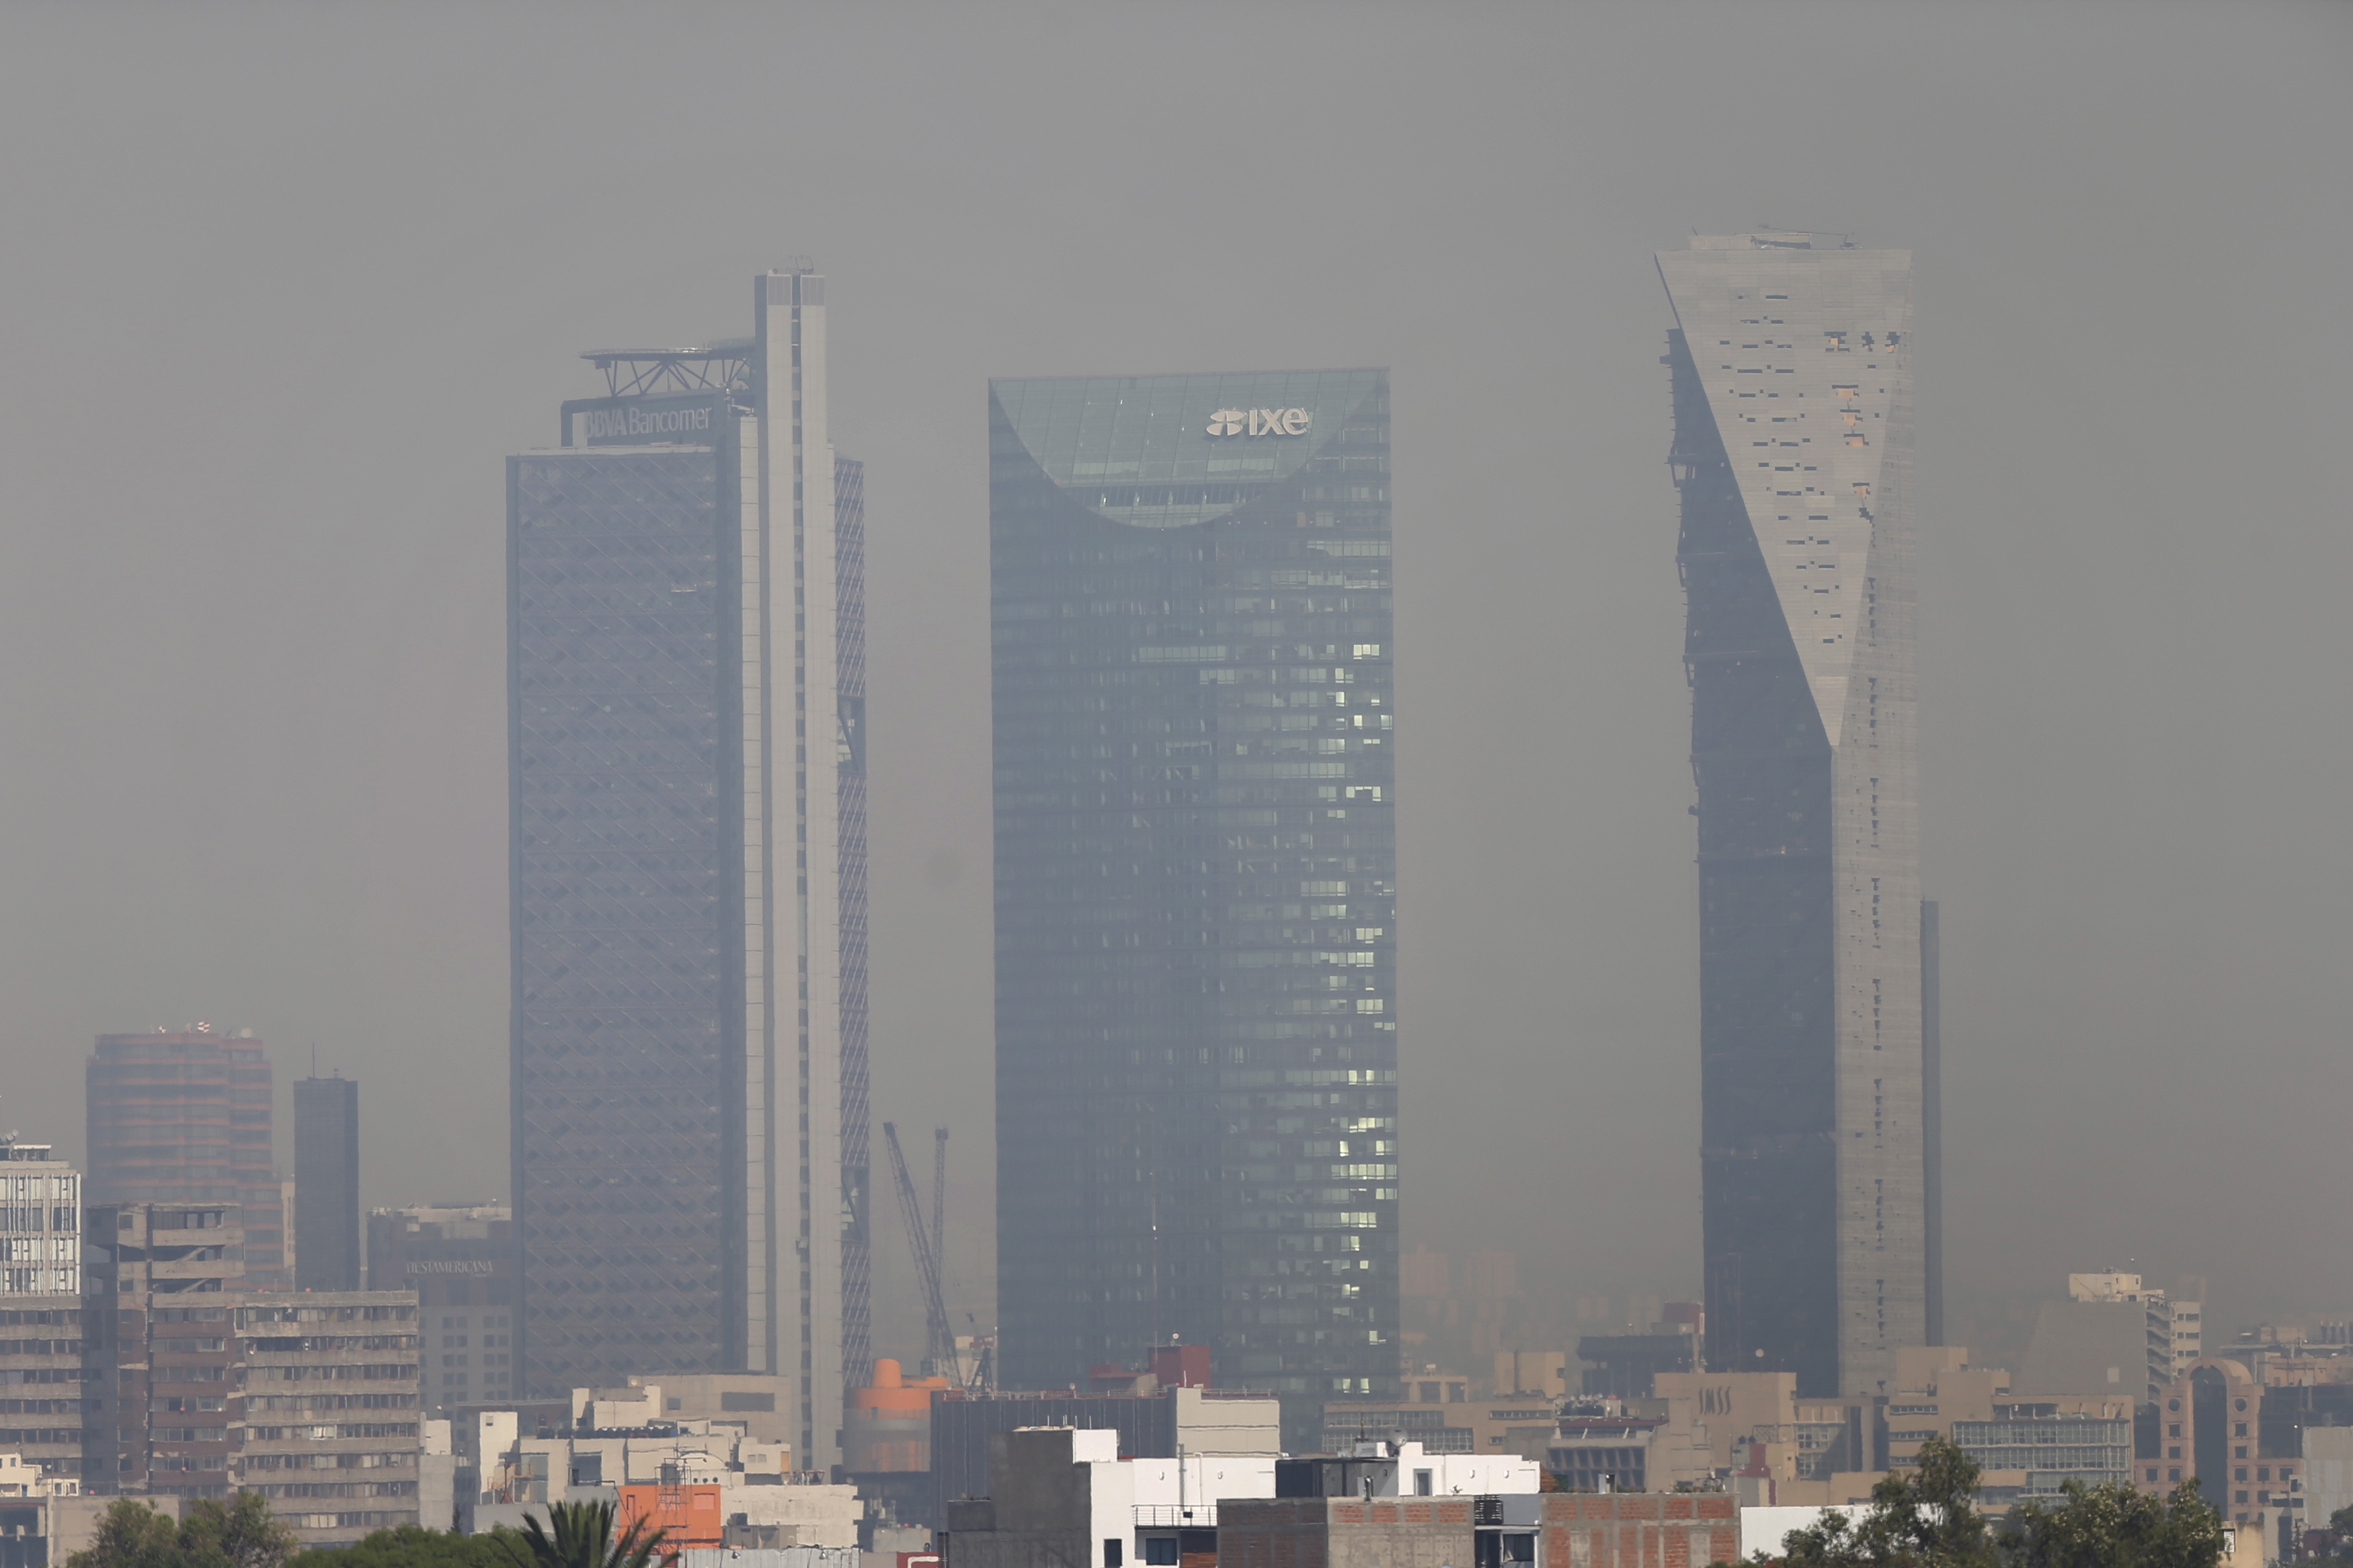 air pollution in mexico city essay Access to over 100,000 complete essays and in areas where pollution exceeds federal air quality standards, as well air pollution is responsible for more.